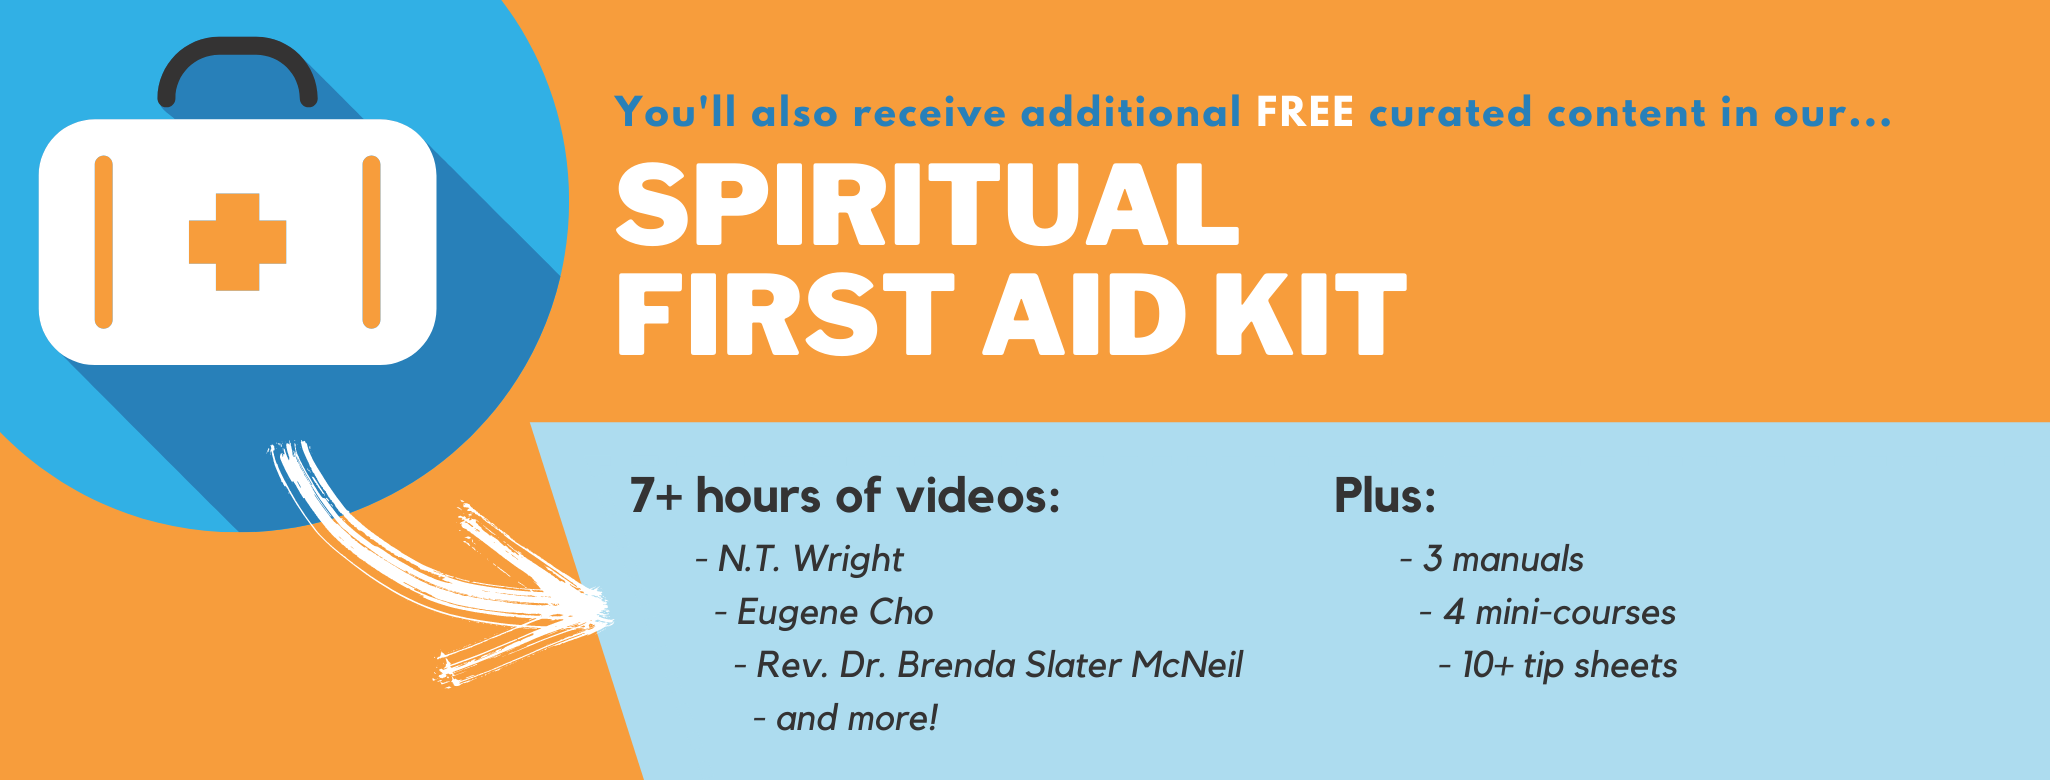 You'll also receive additional free curated content in our Spiritual First Aid Kit. 7+ hours of videos: N.T. Wright, Eugene Cho, Rev. Dr. Brenda Slater McNeil, and more! Plus 3 manuals, 4 mini-courses, 10+ tip sheet